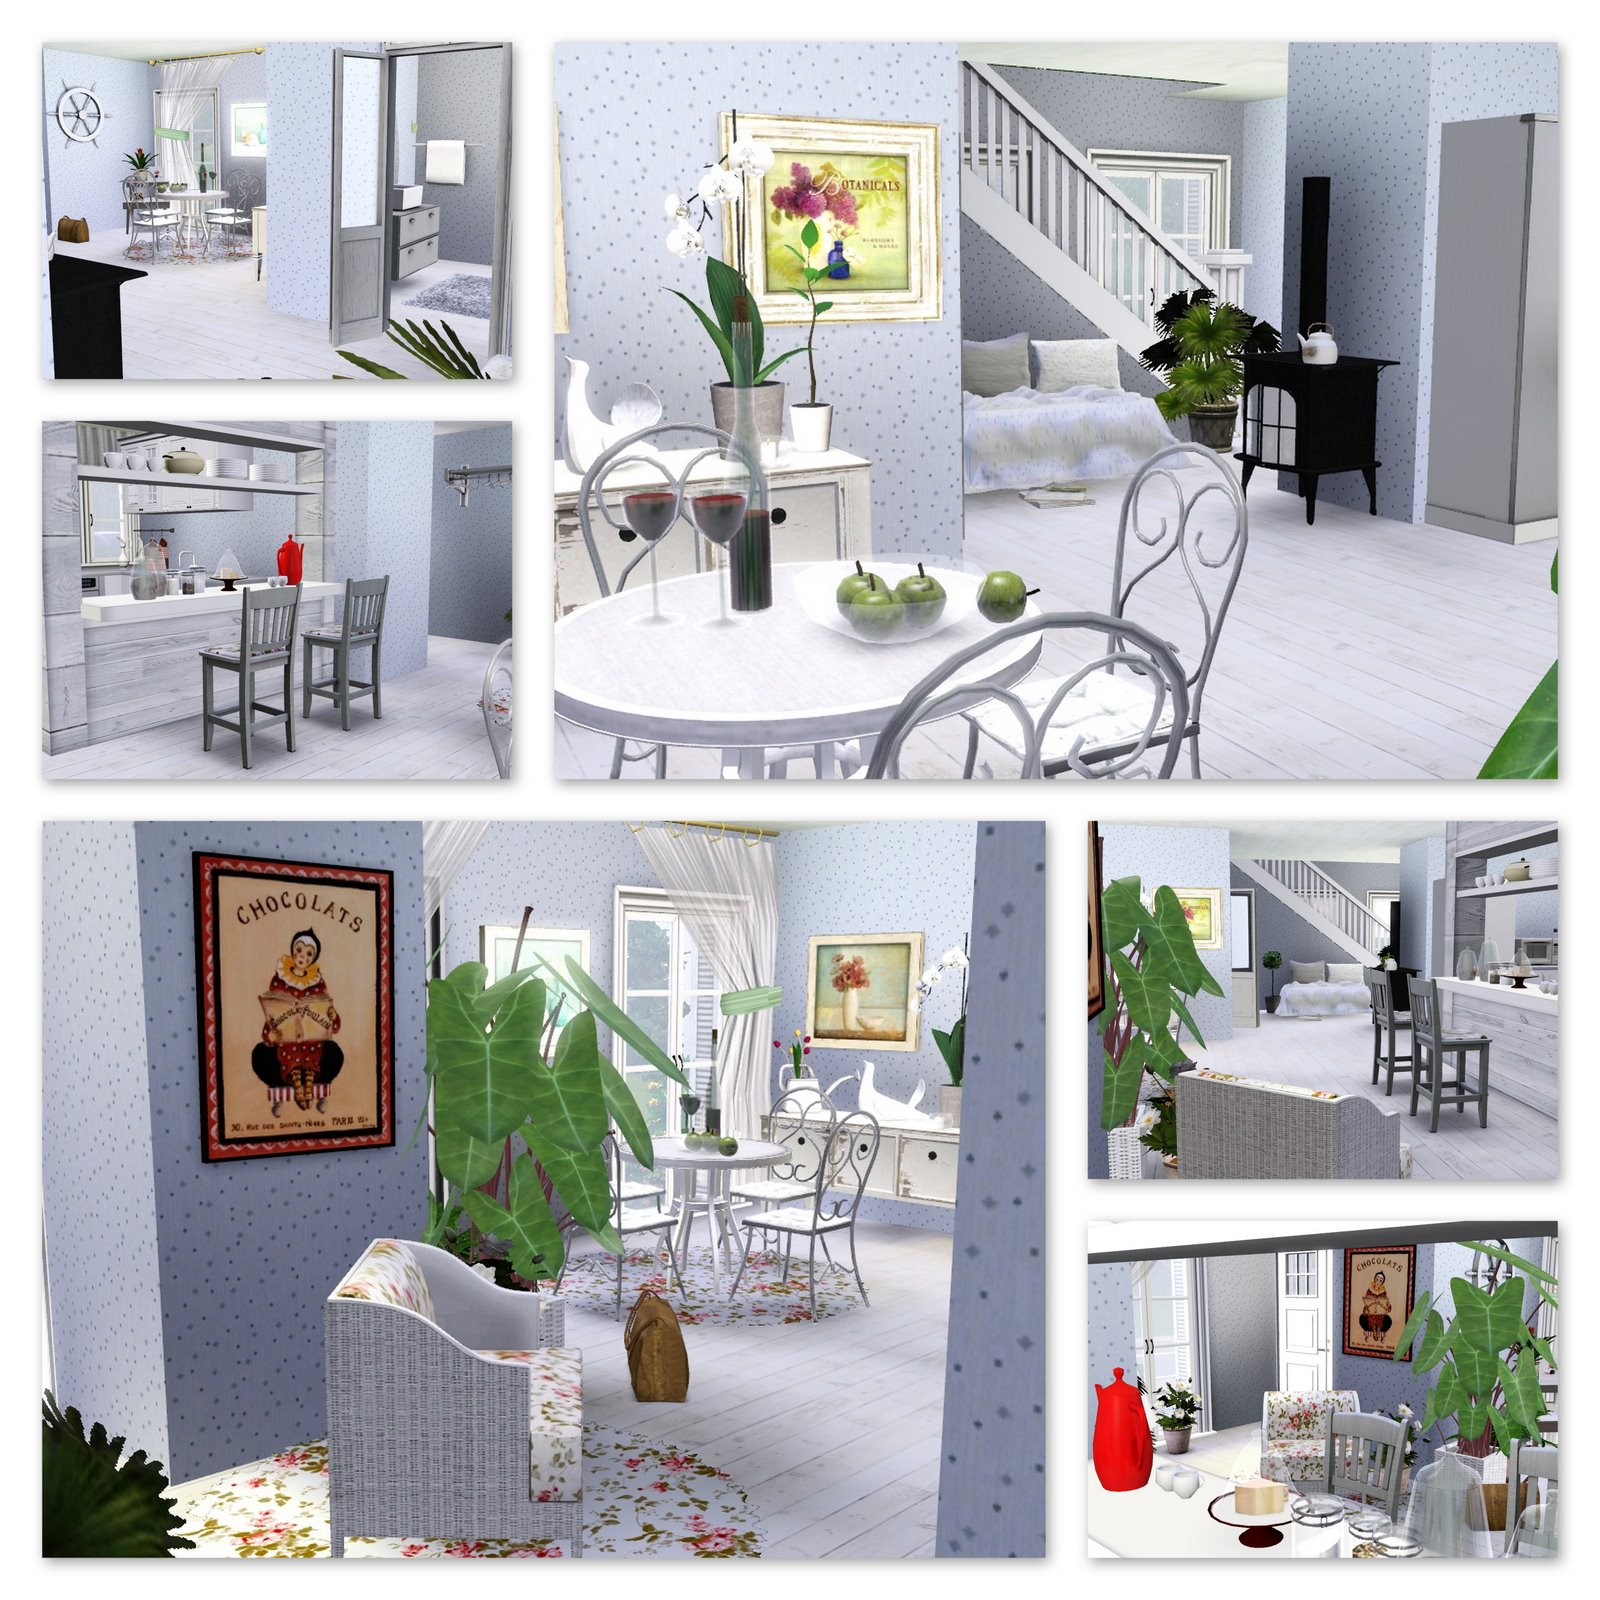 Sims 3 Updates Home Sweet Home Romantika House By Smokvica!